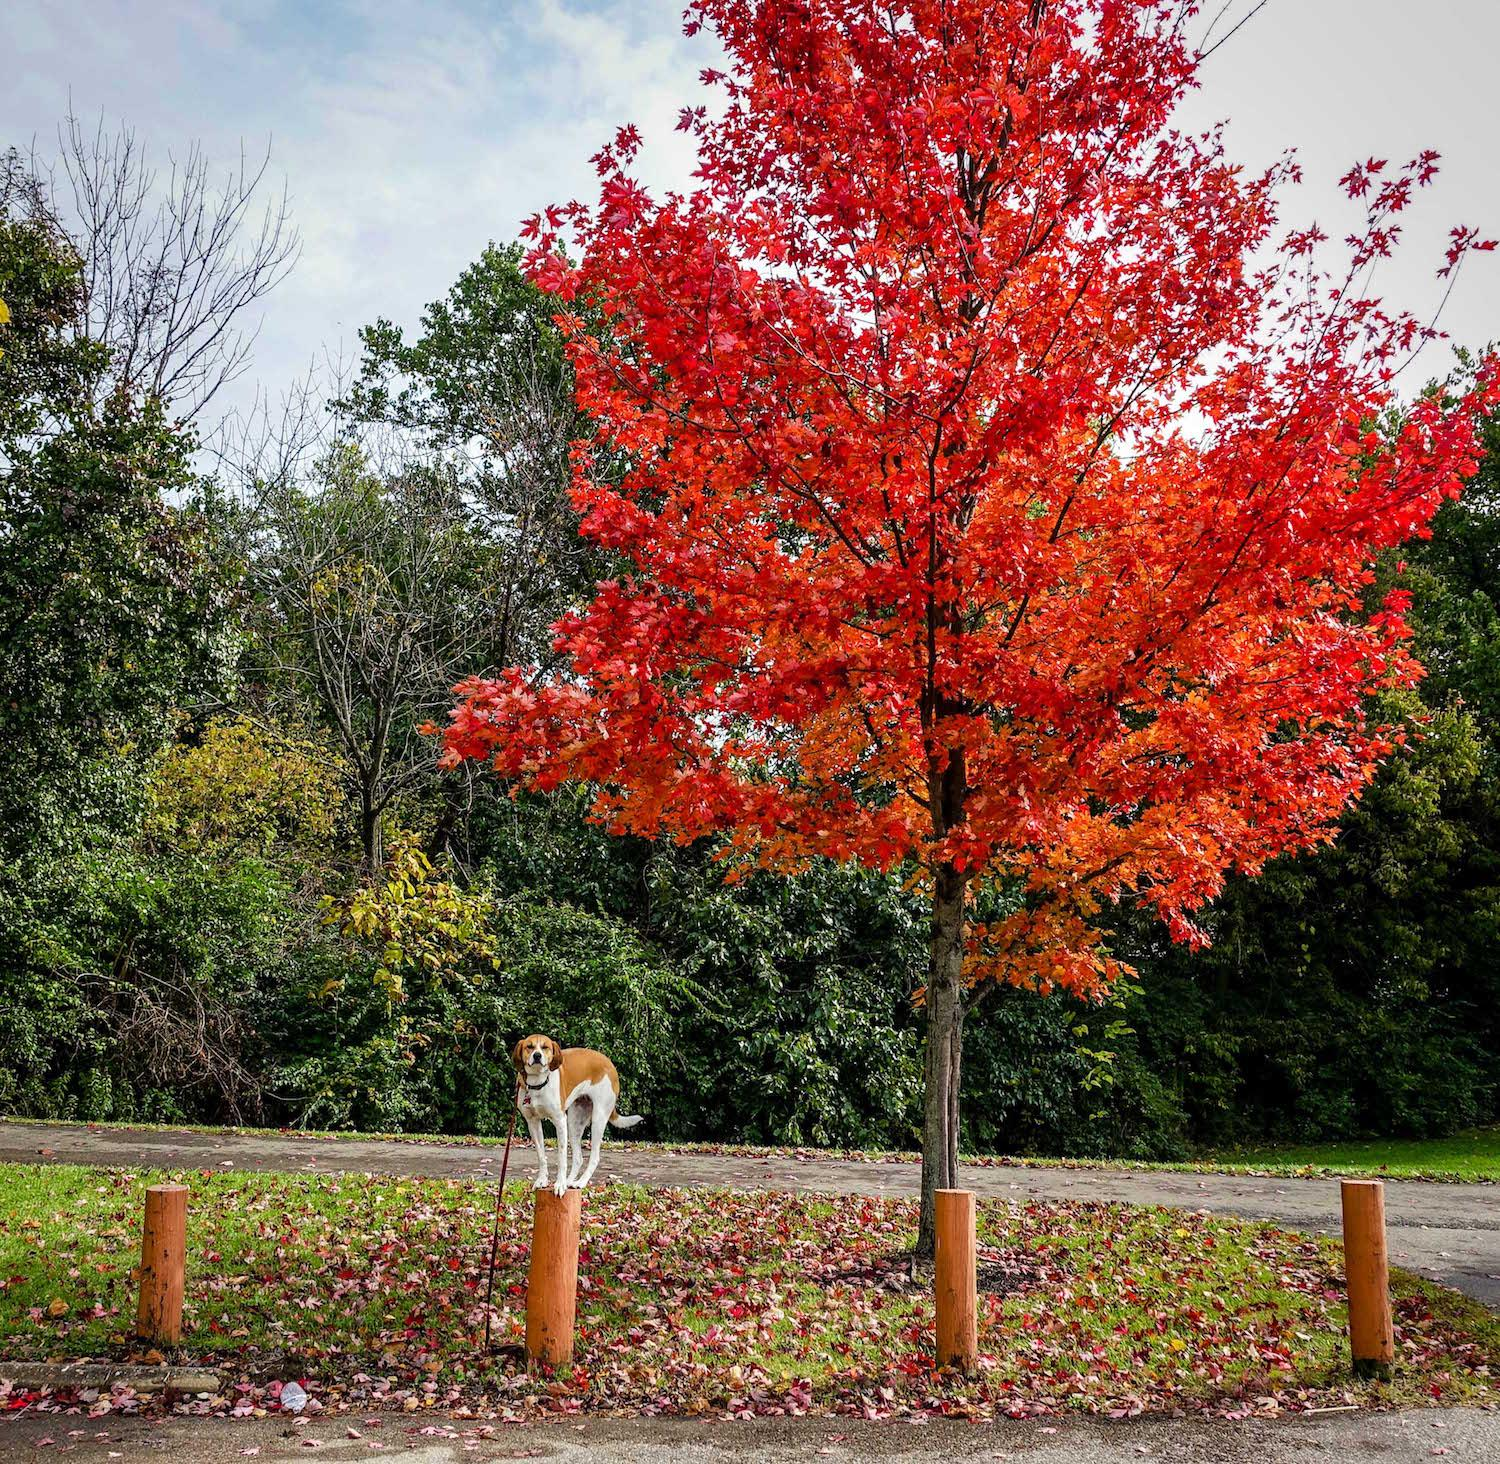 LOCATION: Colerain Park in the fall / Mollie is a local Instagram celebrity. Famous for posing on fire hydrants in front of ArtWorks murals (and other Cincy landmarks), this hound dog has officially stolen our hearts. You can follow her adventures on Instagram @molliethehounddoggie / Image: Patti Mossey (Mollie's owner and #1 fan) // Published: 5.1.18